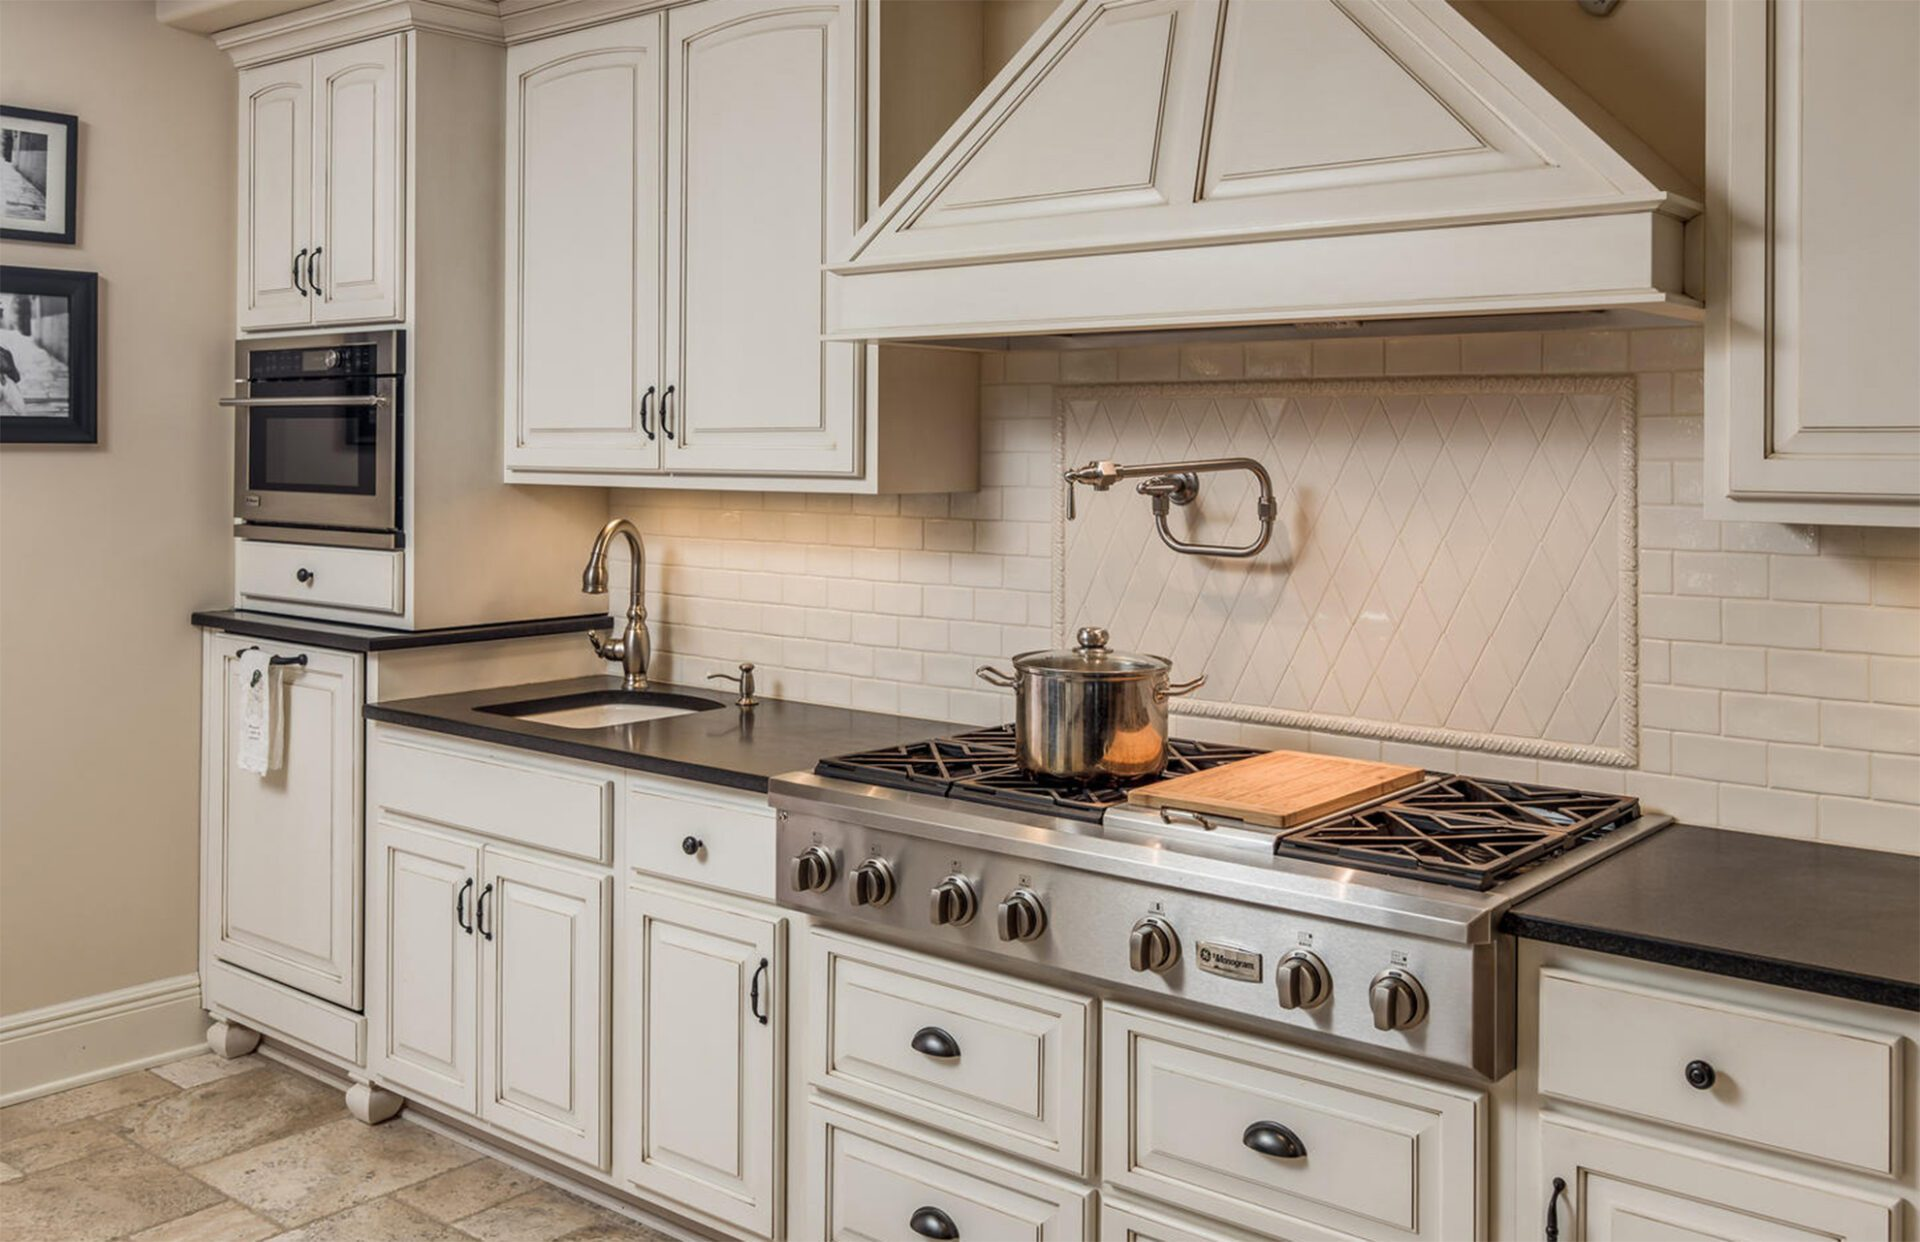 kitchen renovation for a home improvement in nashville tn near brentwood and franklin